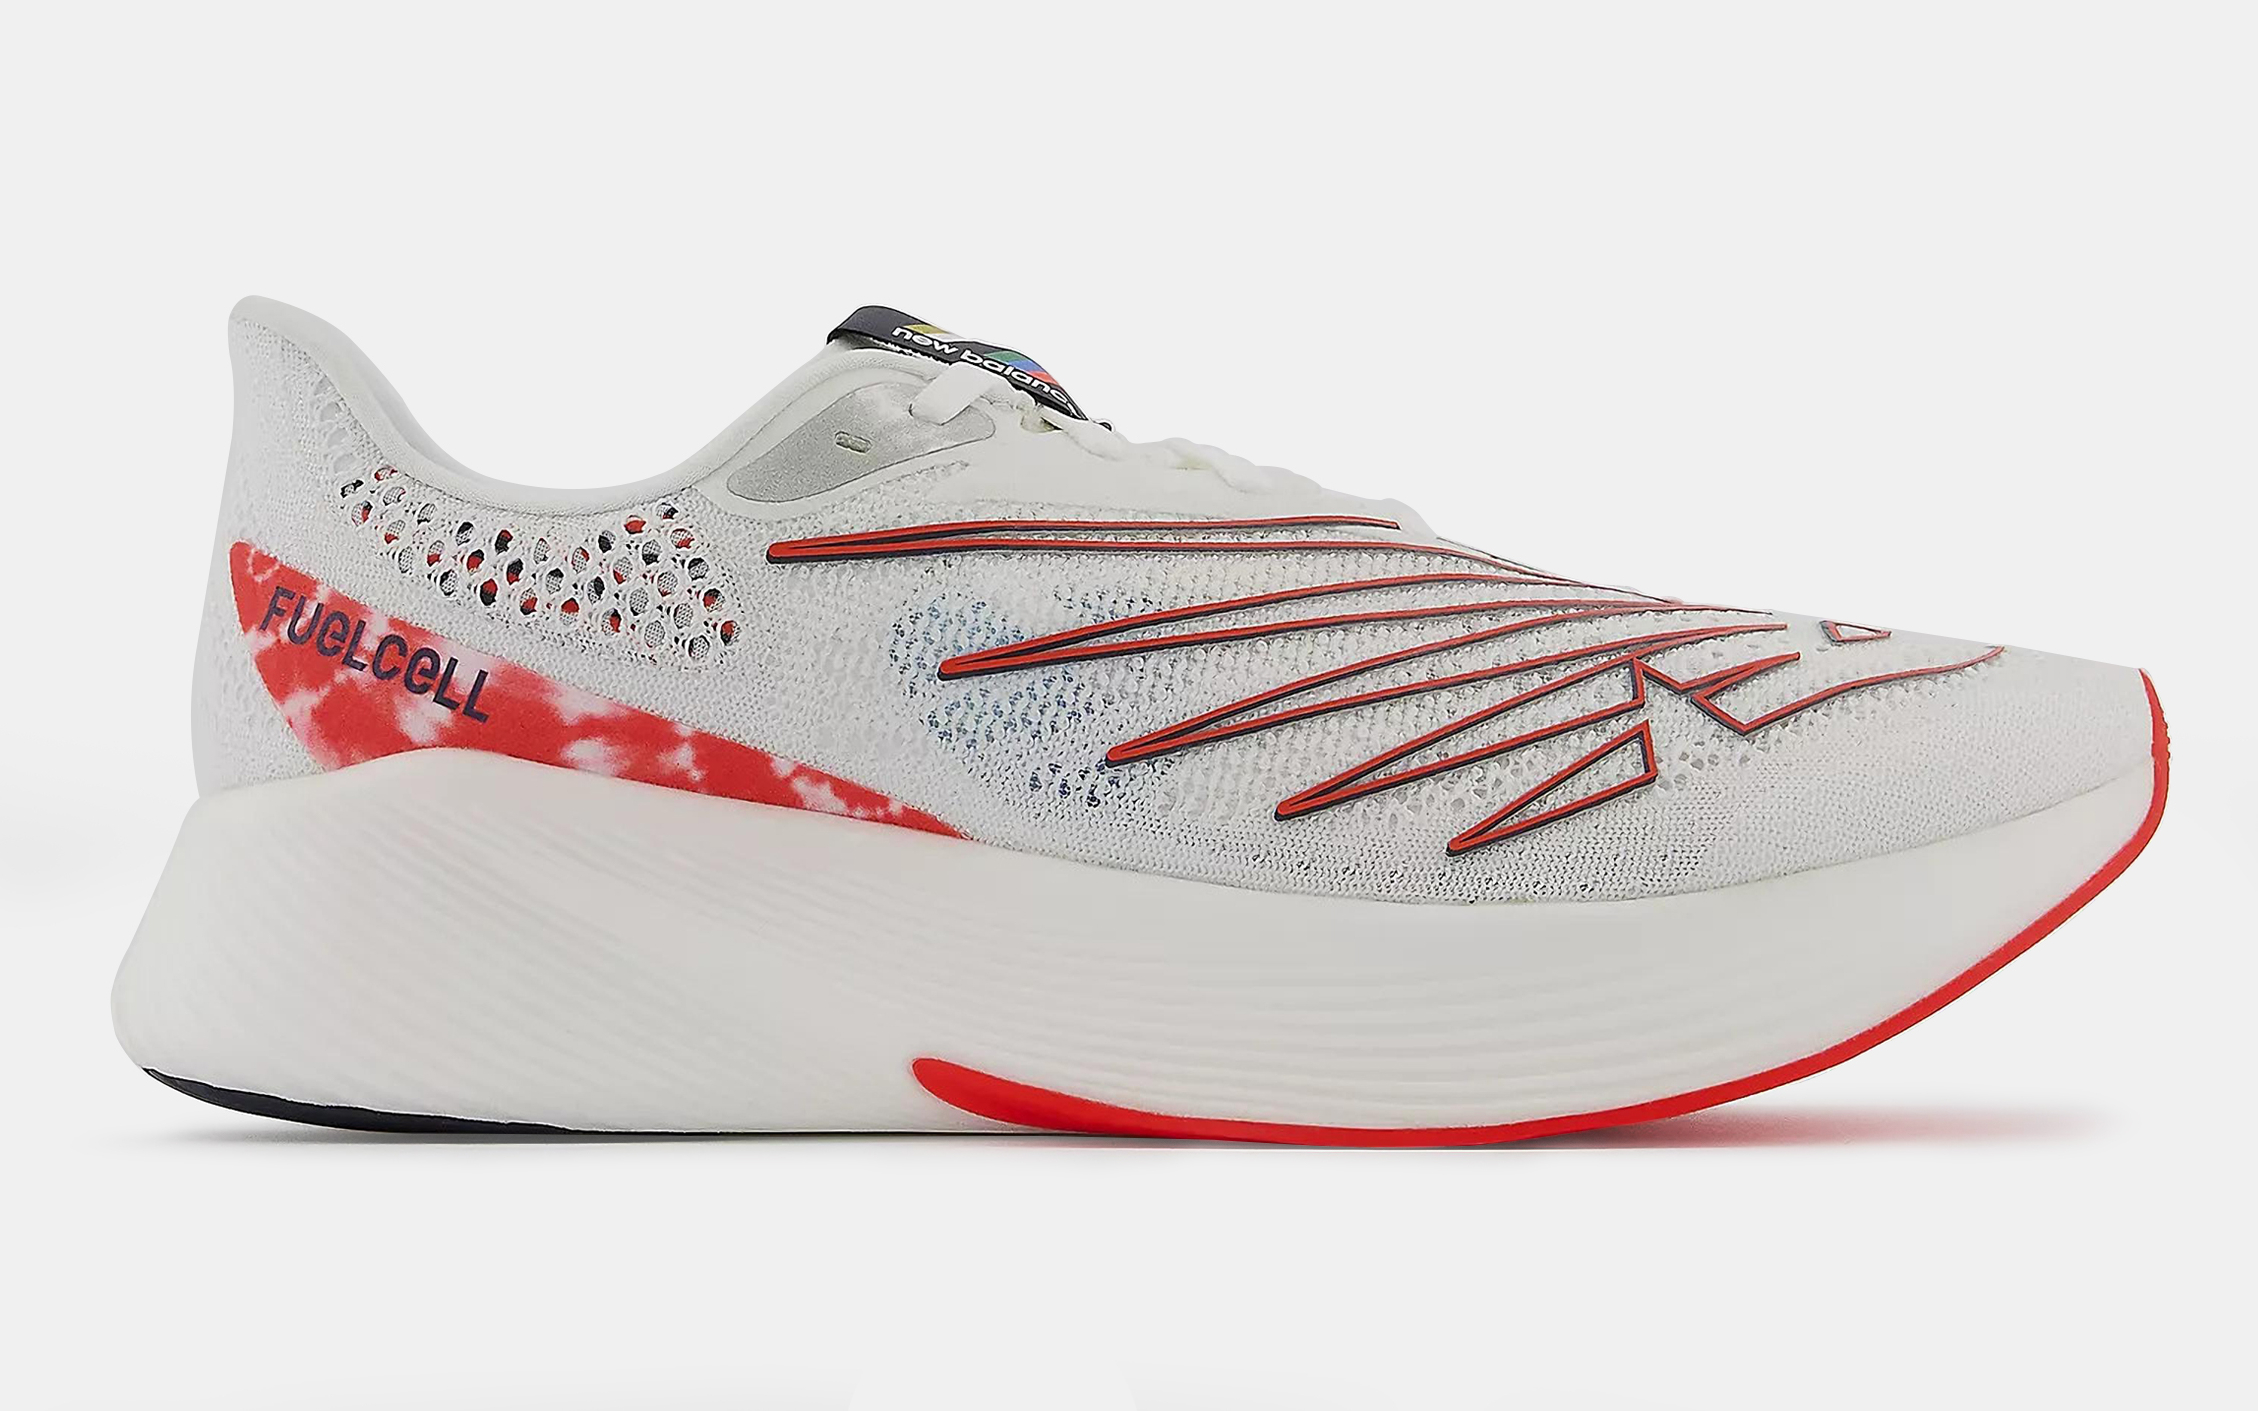 New Balance FuelCell RC Elite V2 Sneakers